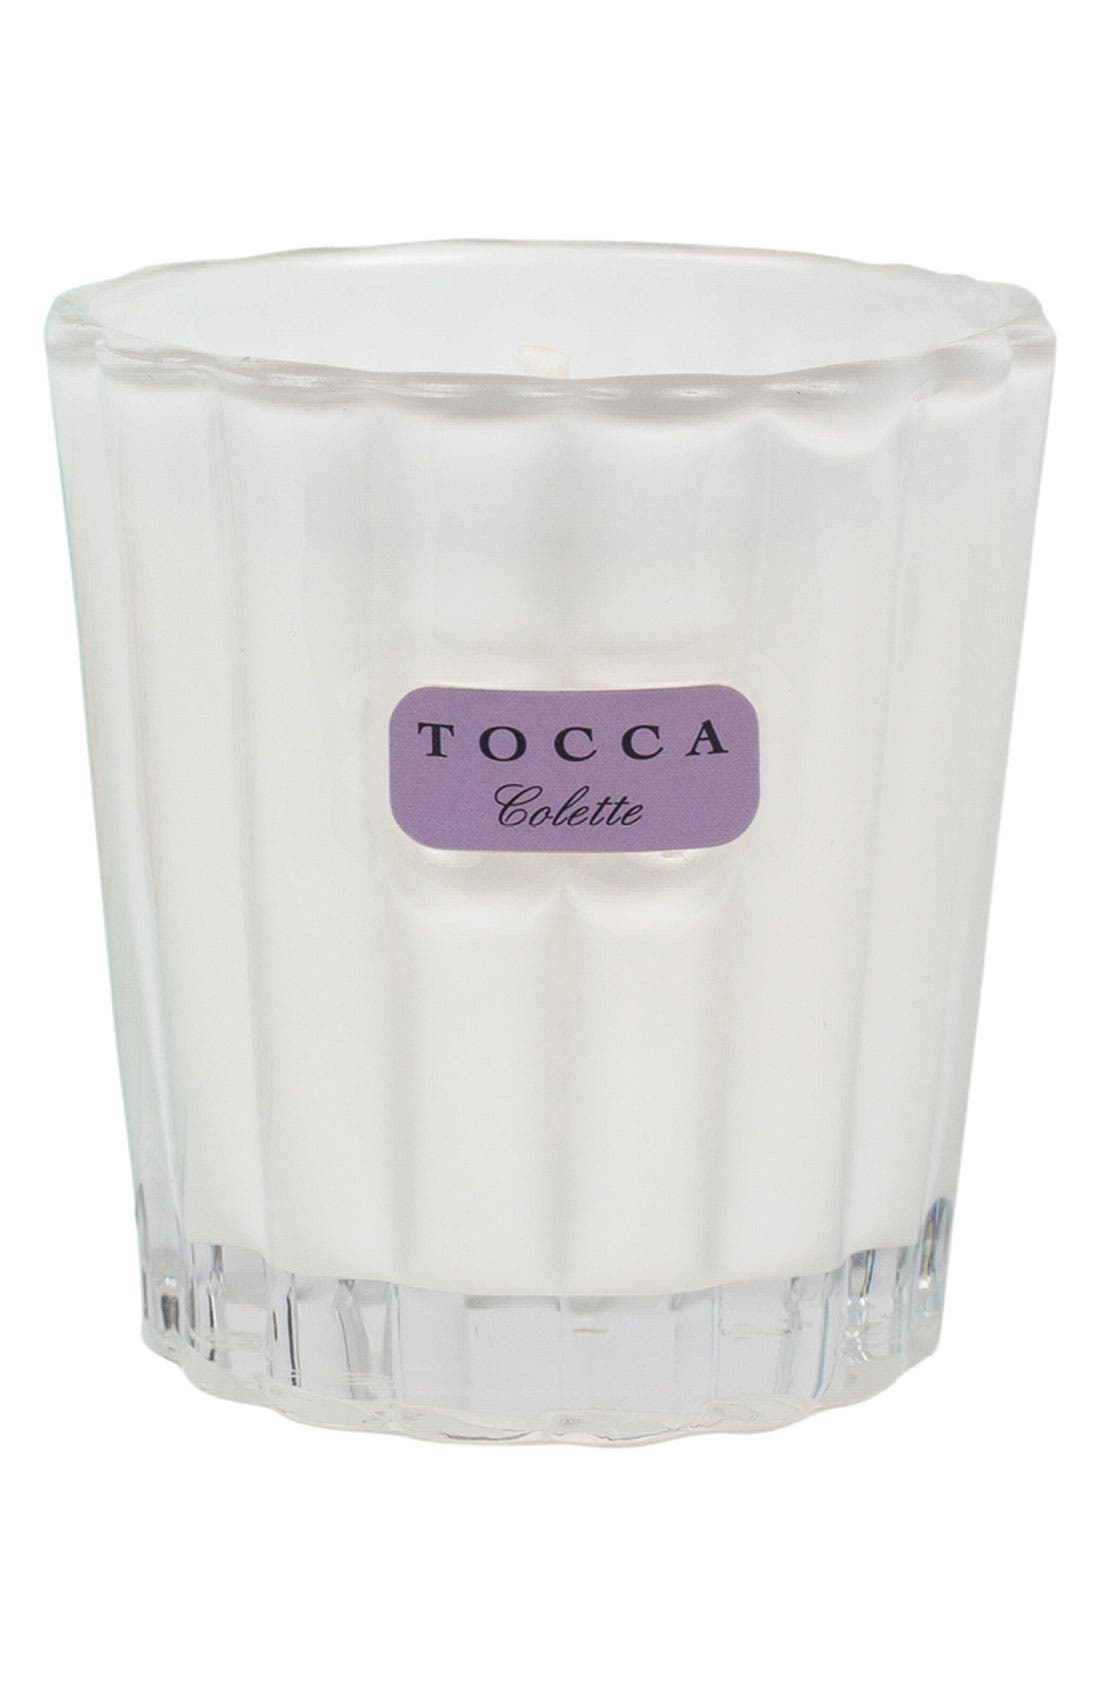 Main Image - TOCCA 'Colette' Candelina